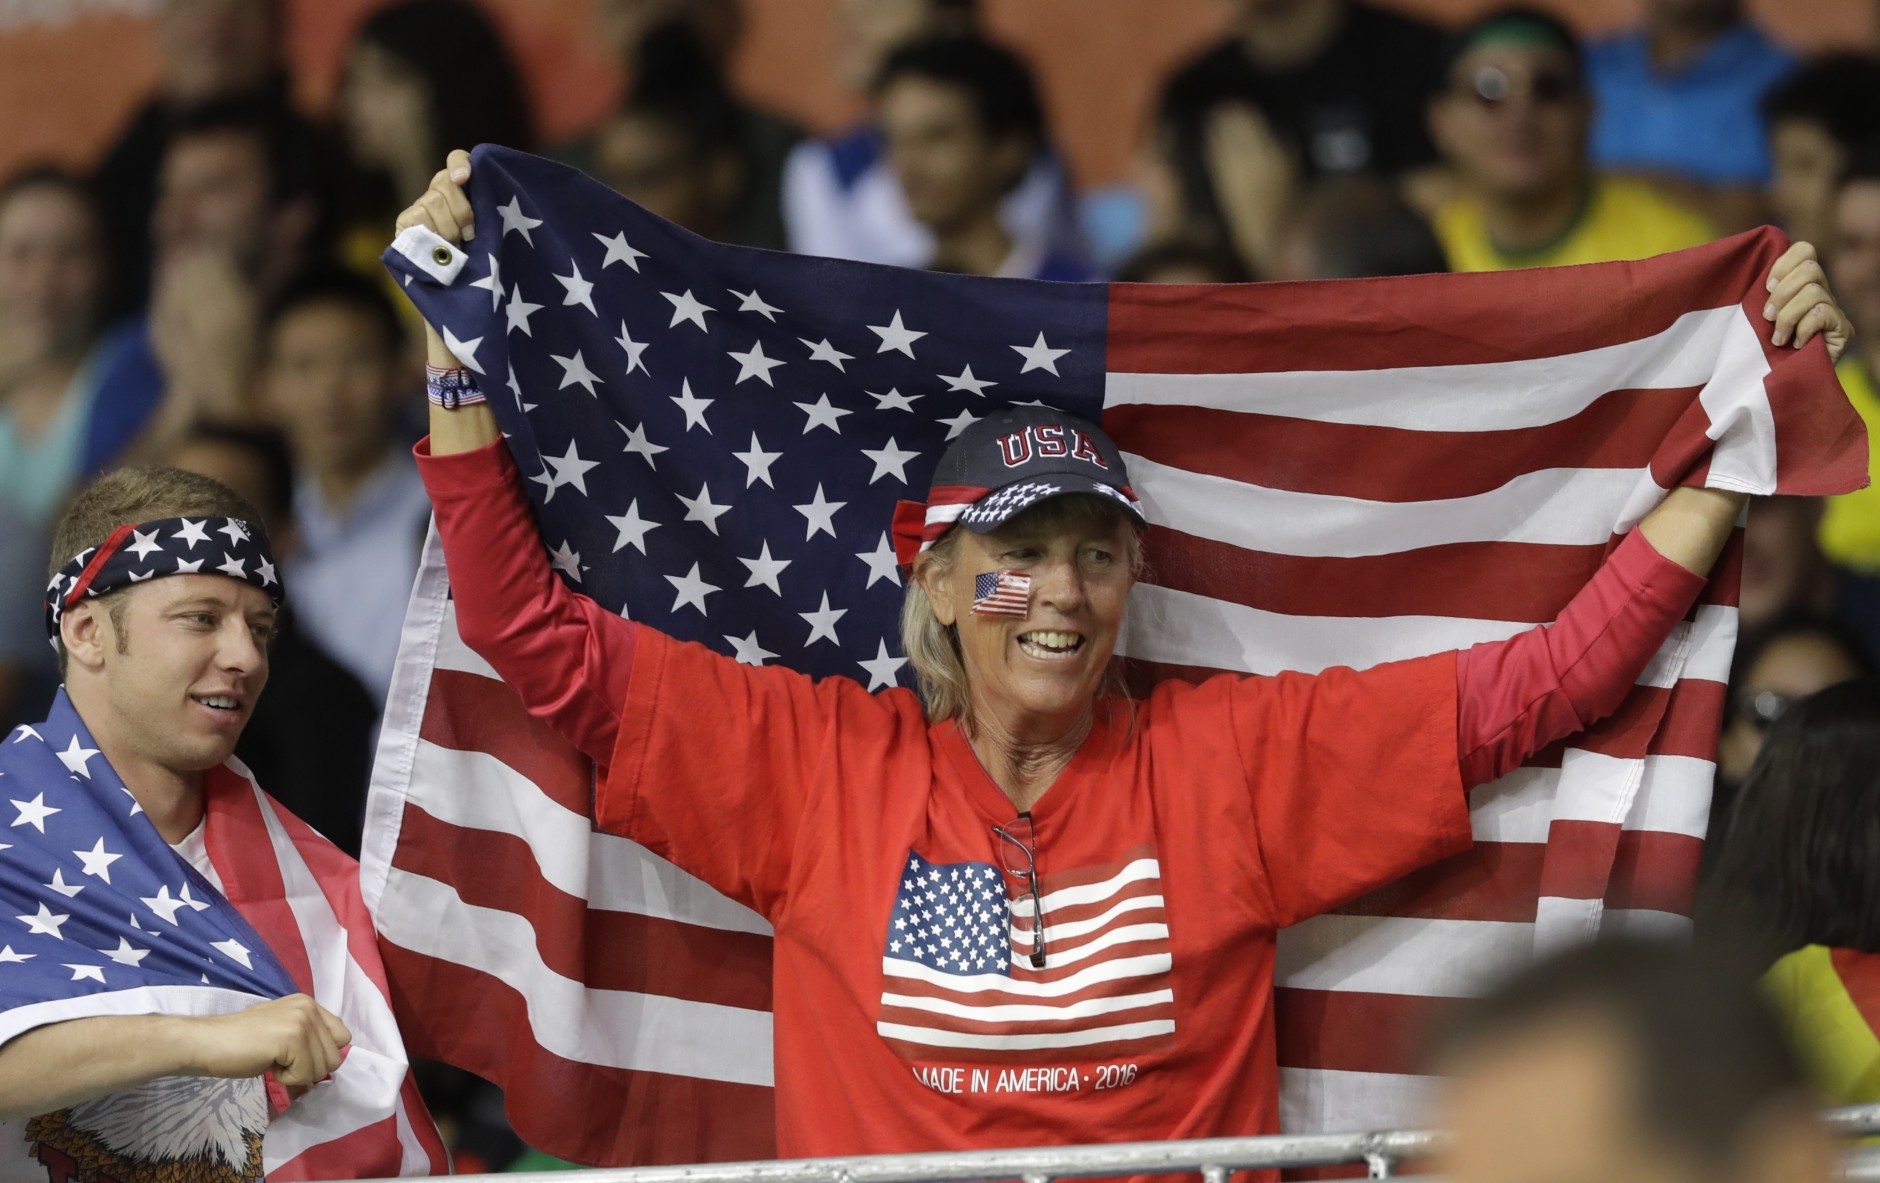 A fan bearing a United States flag is seen during the second half of a women's basketball game between the United States and Spain at the Youth Center at the 2016 Summer Olympics in Rio de Janeiro, Brazil, Monday, Aug. 8, 2016. (AP Photo/Carlos Osorio)